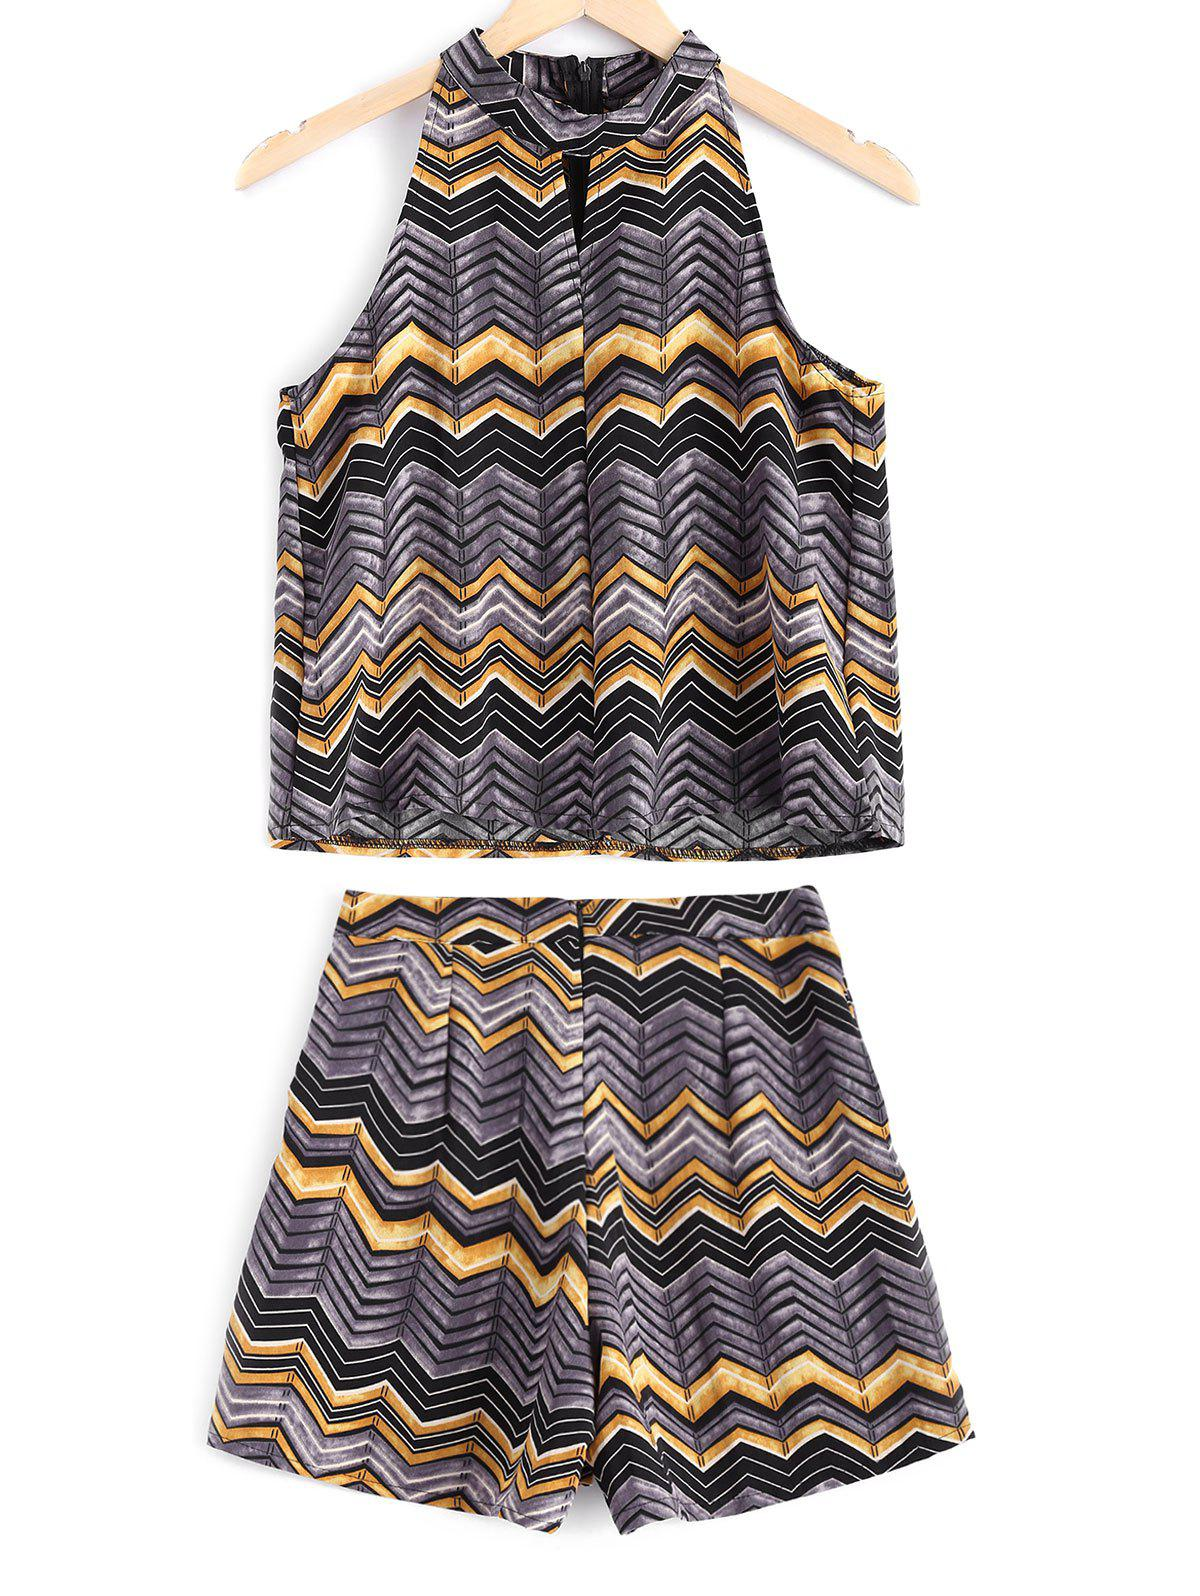 Stylish Women's Jewel Neck Cut Out Print Top and Zipper Fly Print Shorts Set girls cut and sew top